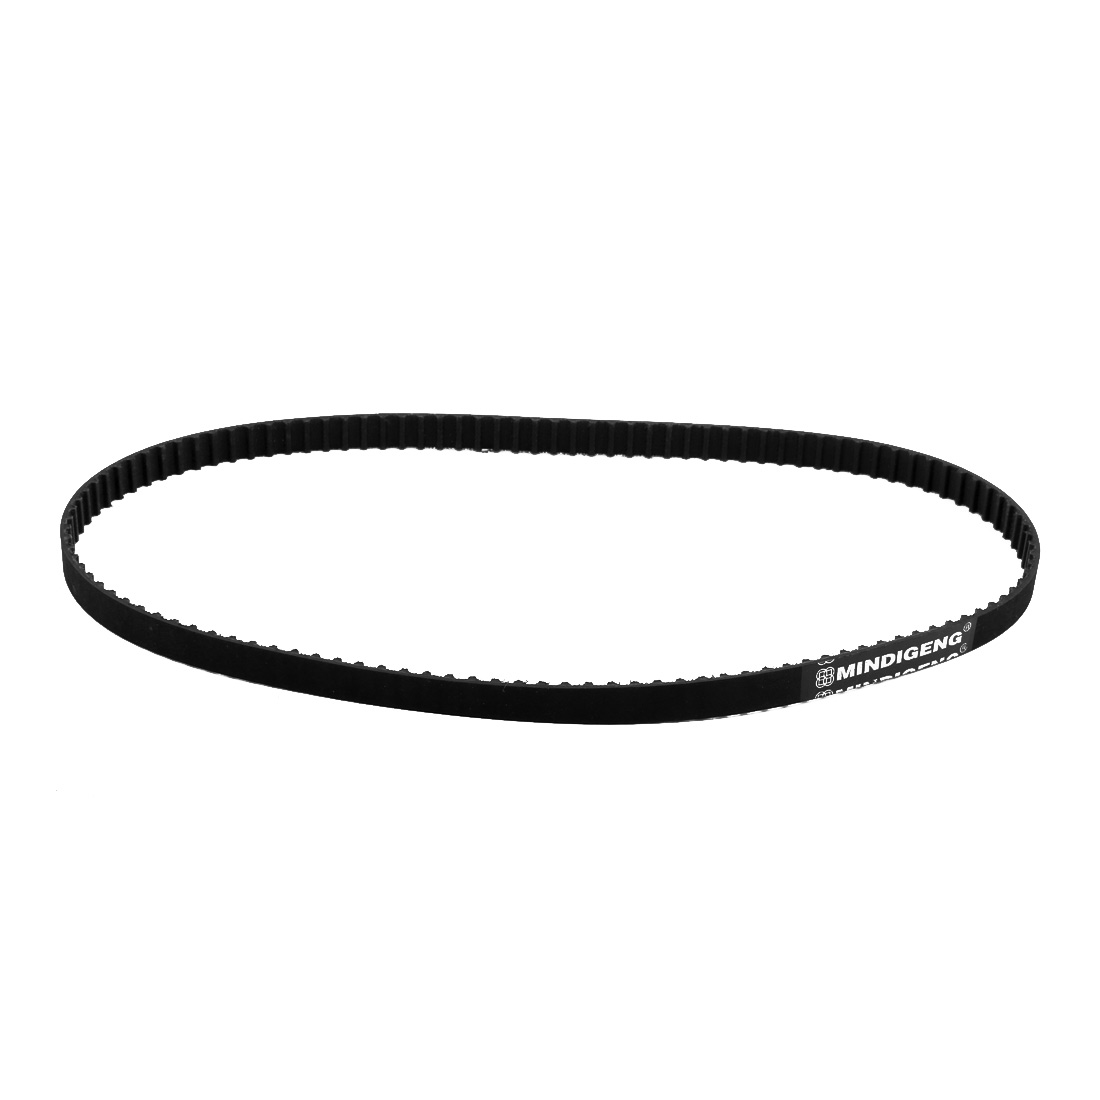 238XL 119 Teeth 10mm Width 5.08mm Pitch Stepper Motor Rubber Timing Belt Black